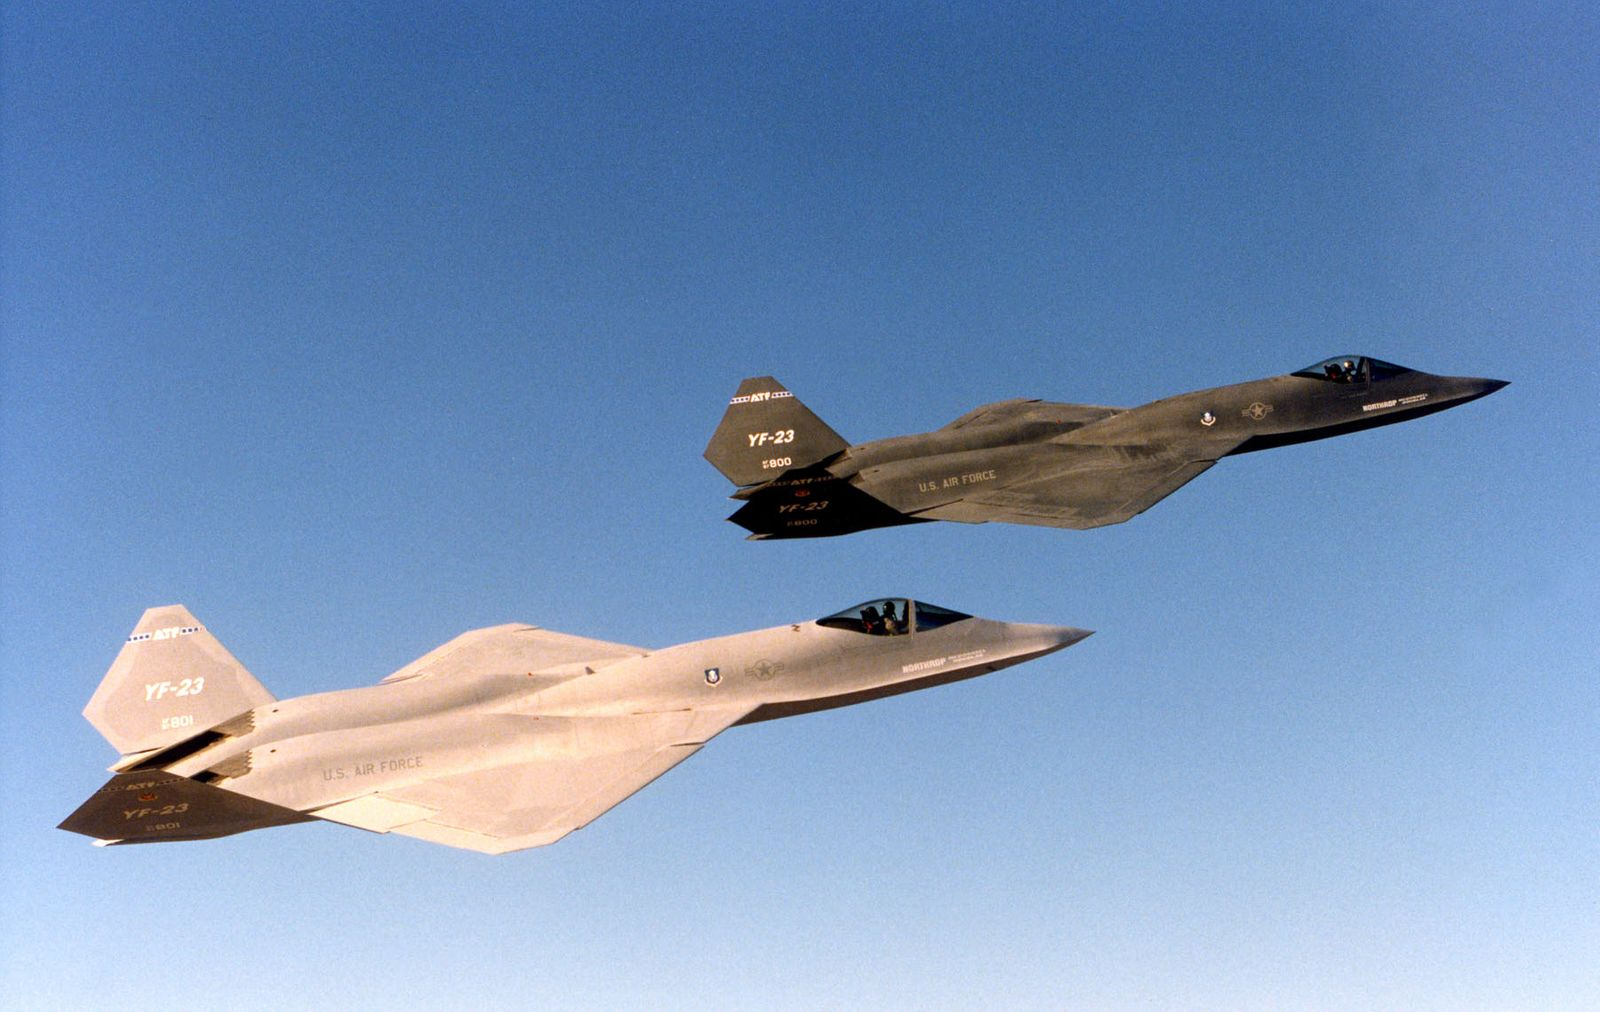 The F-23/YF-23: The Plane The Air Force Turned Down (But Won't Go Away)